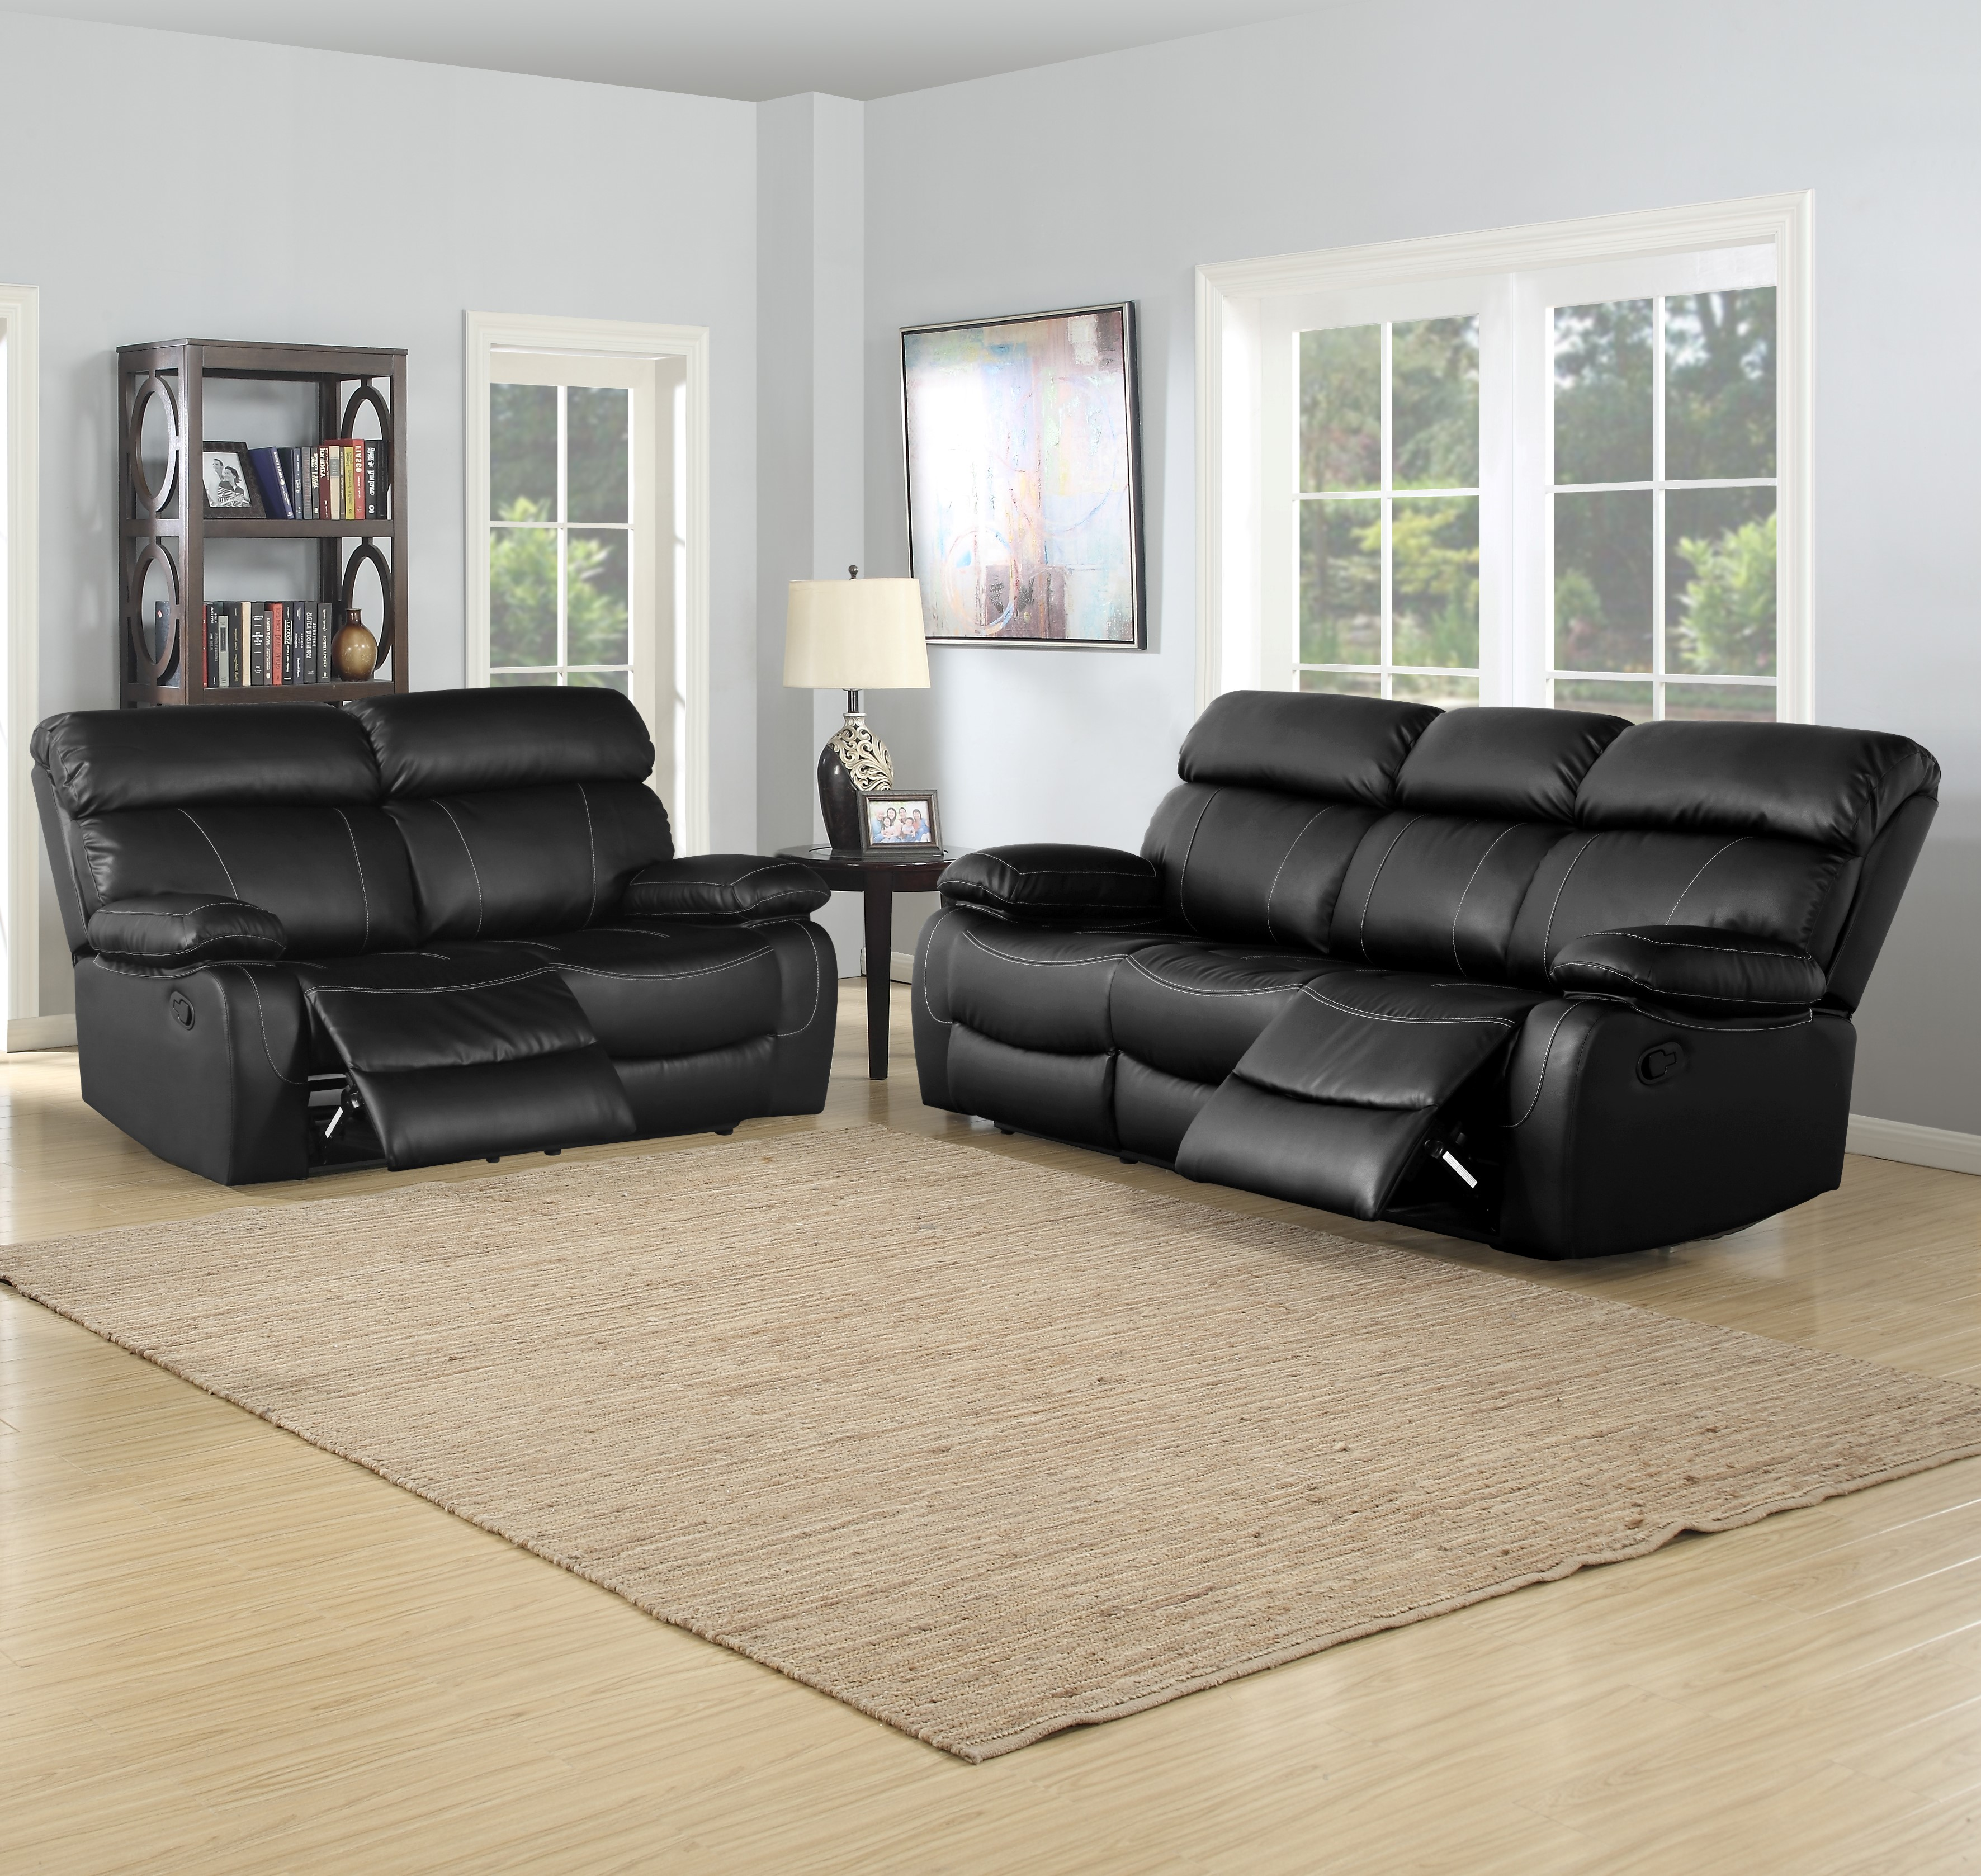 Wilson black reclining 2 pc modern sofa, loveseat